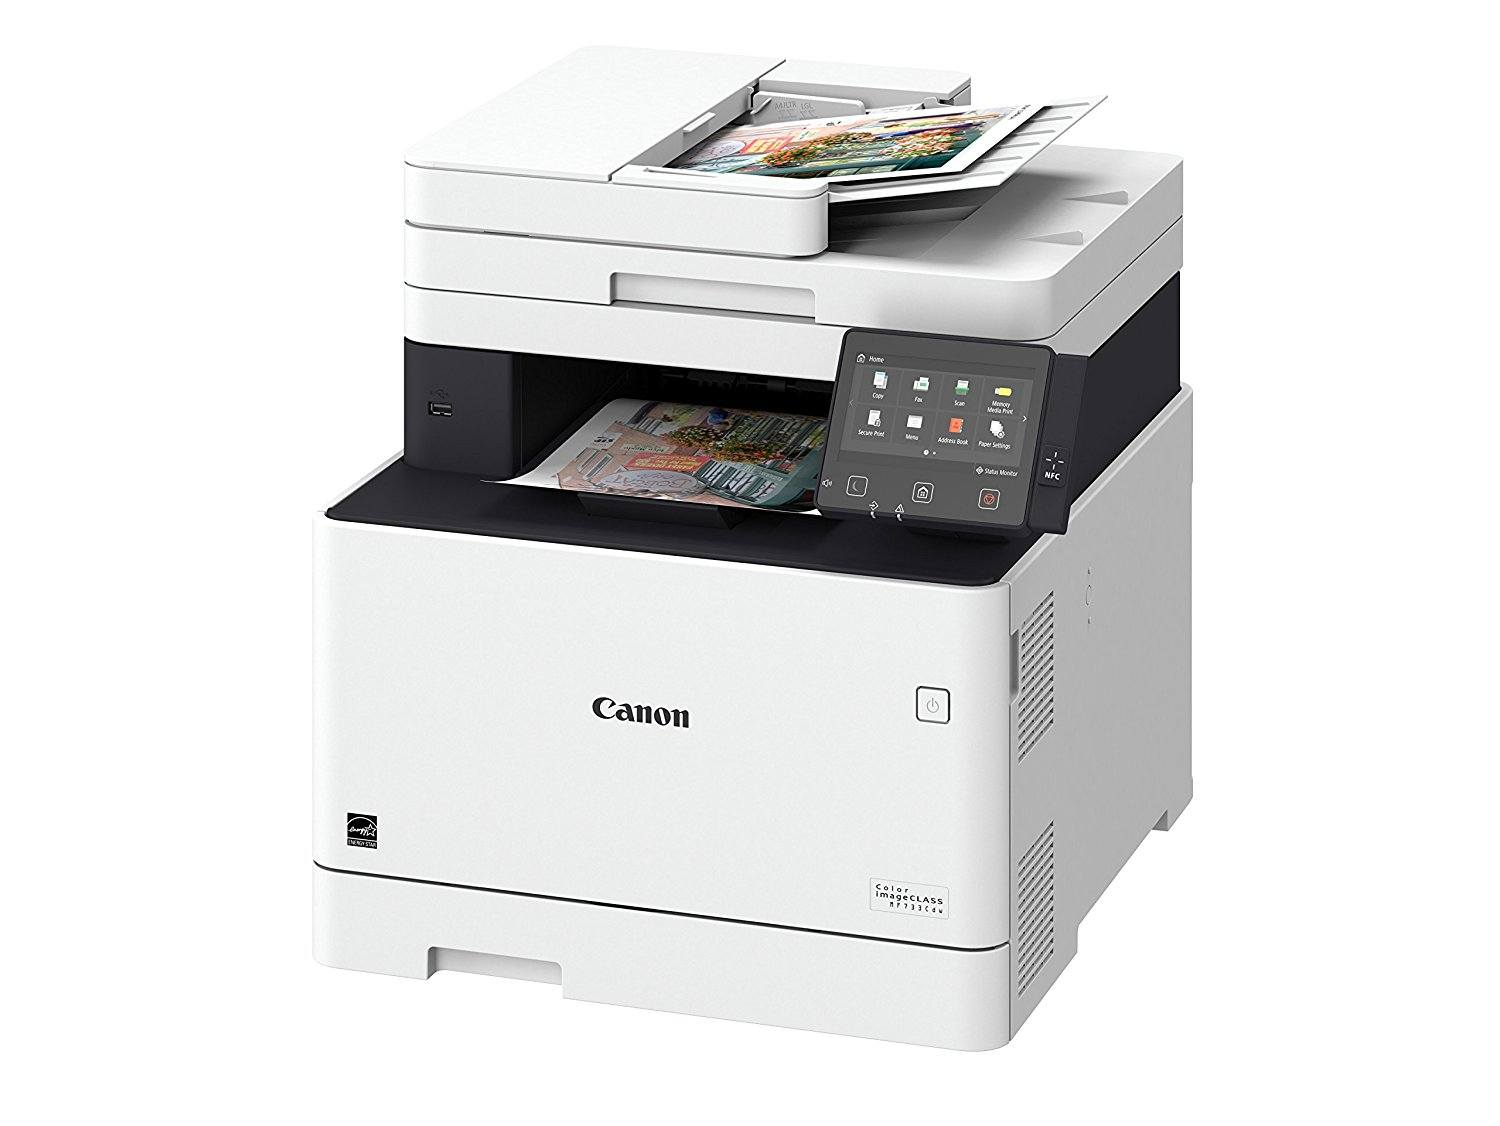 how to fix Canon printer not printing issue